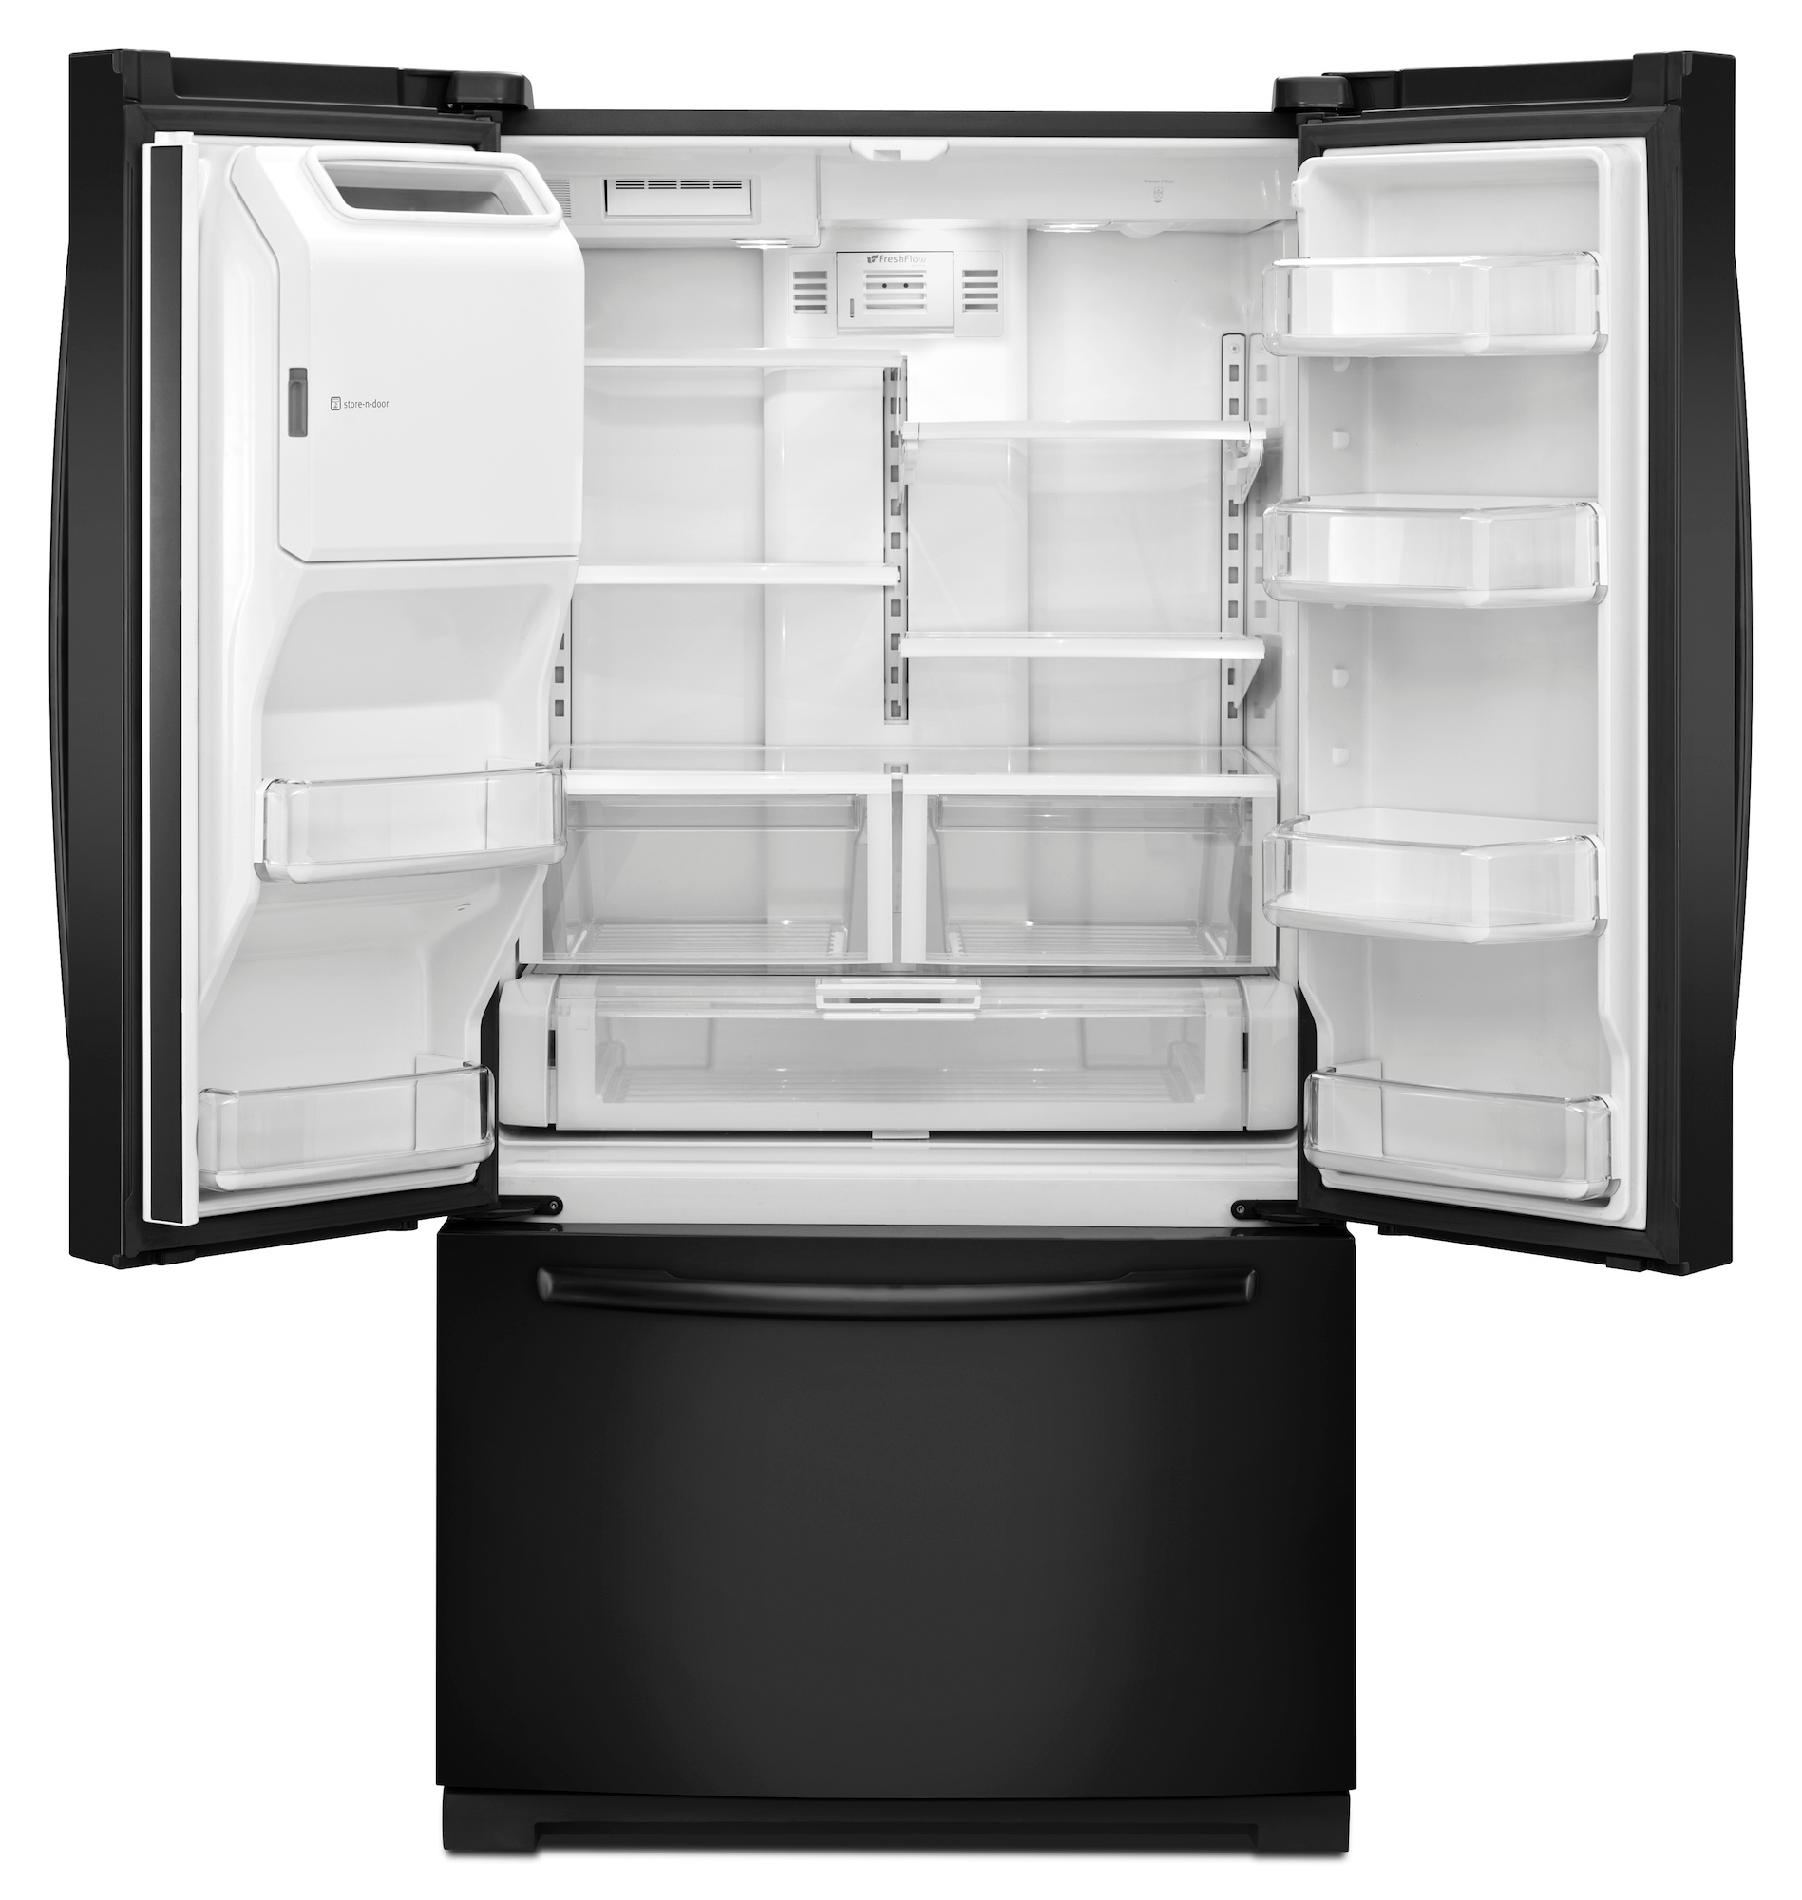 Maytag 26.1 cu. ft. French-Door Refrigerator w/ 2X Life Compressor - Black